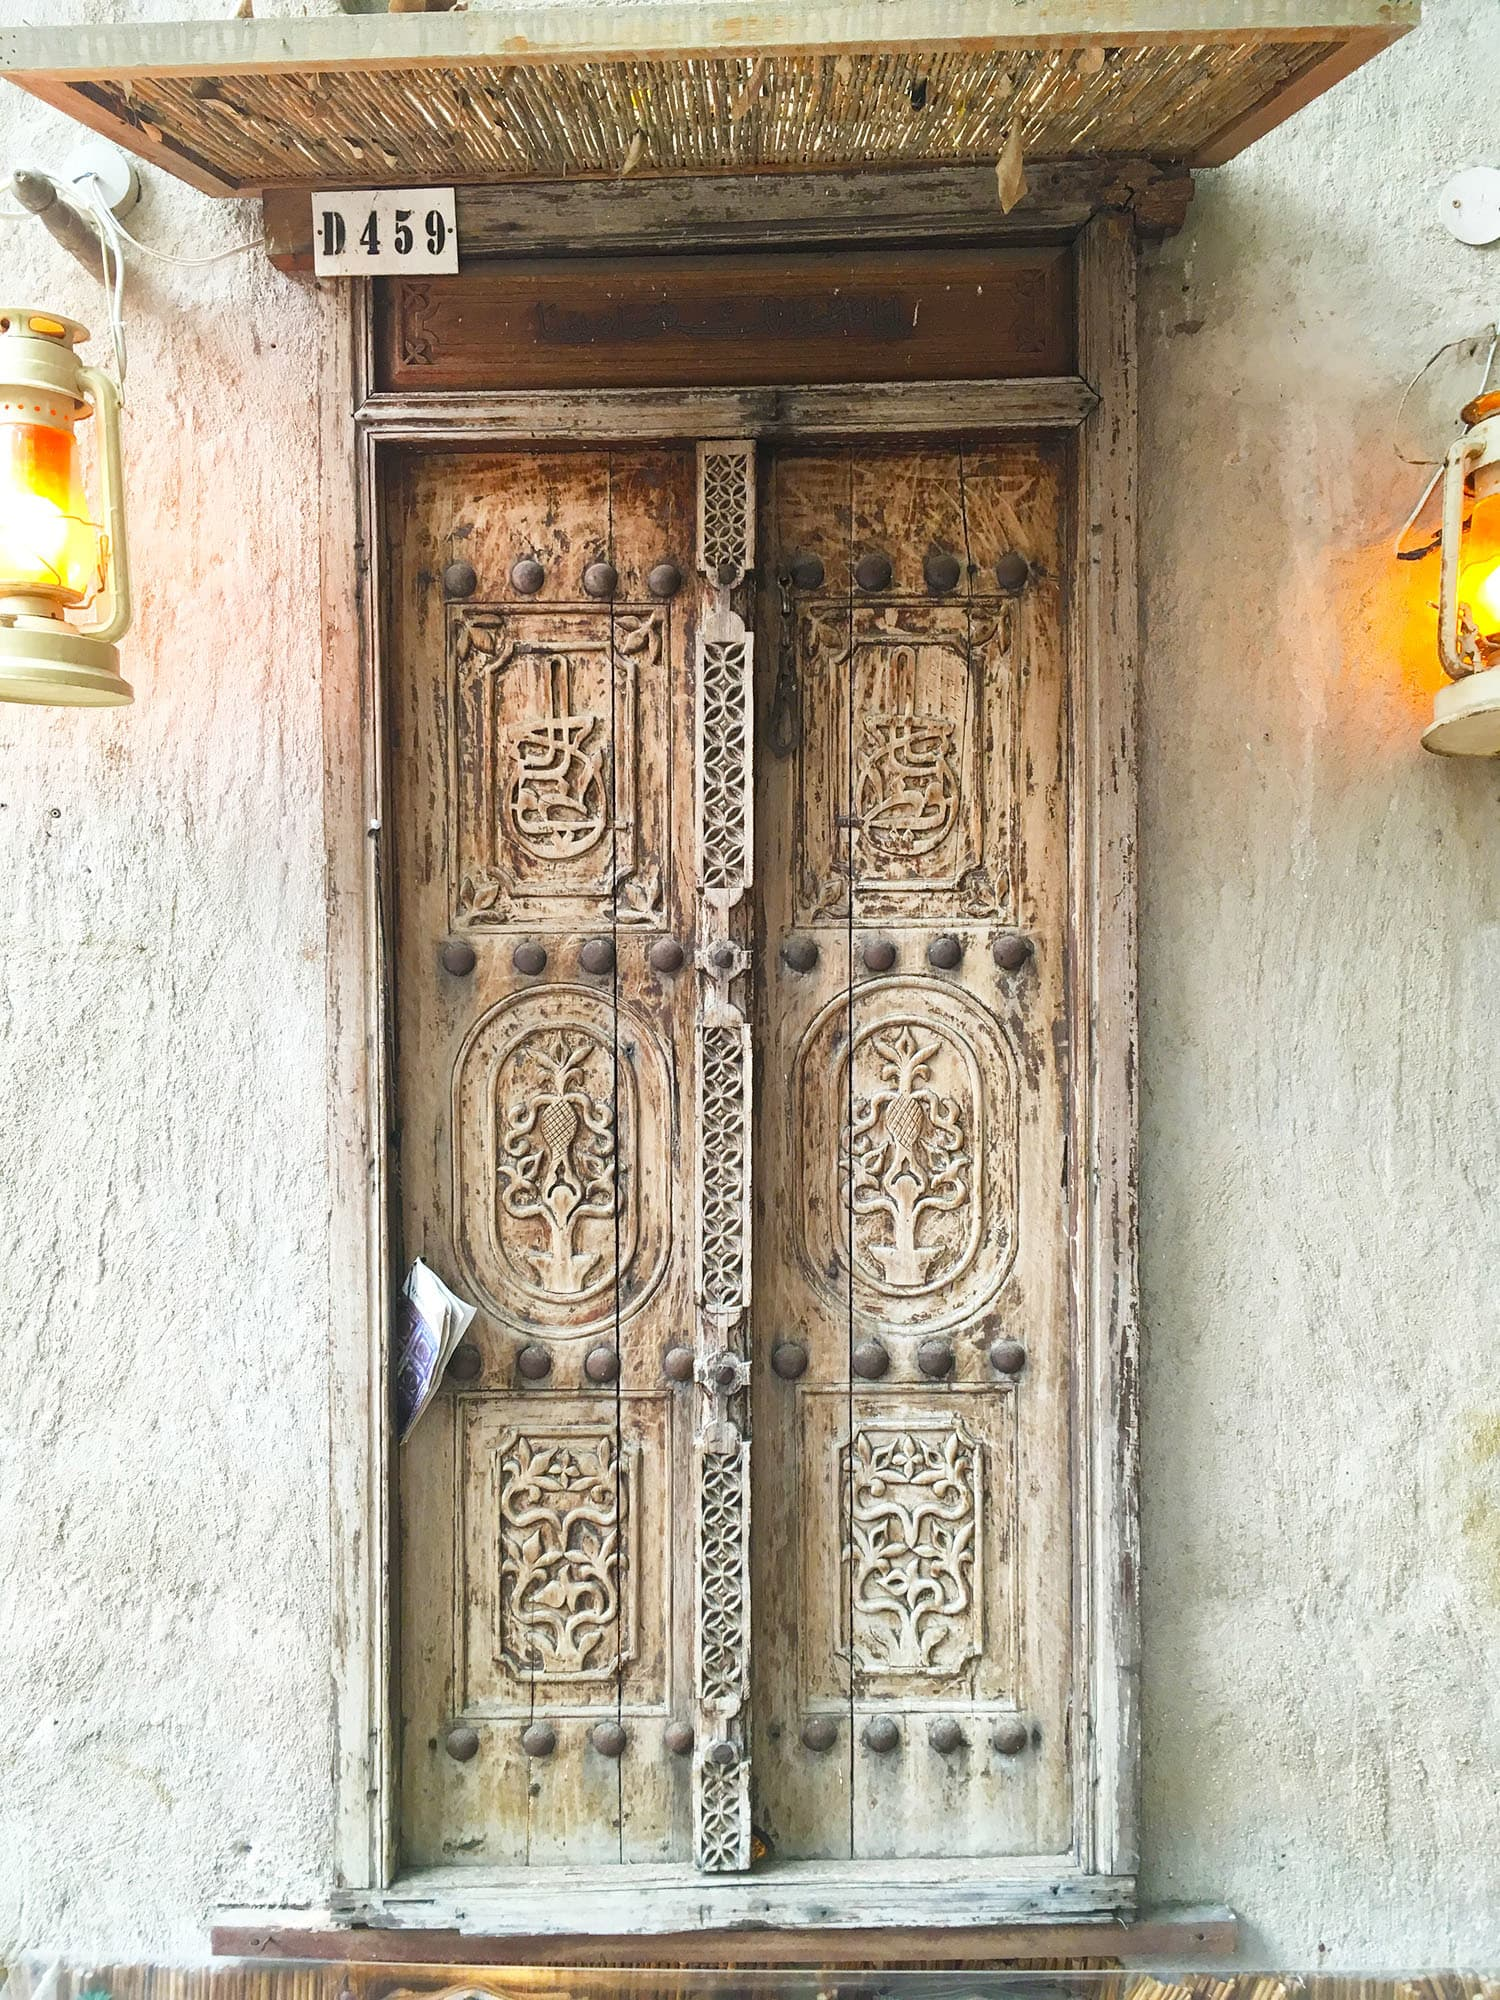 One of the beautiful, antique wooden doors on display.